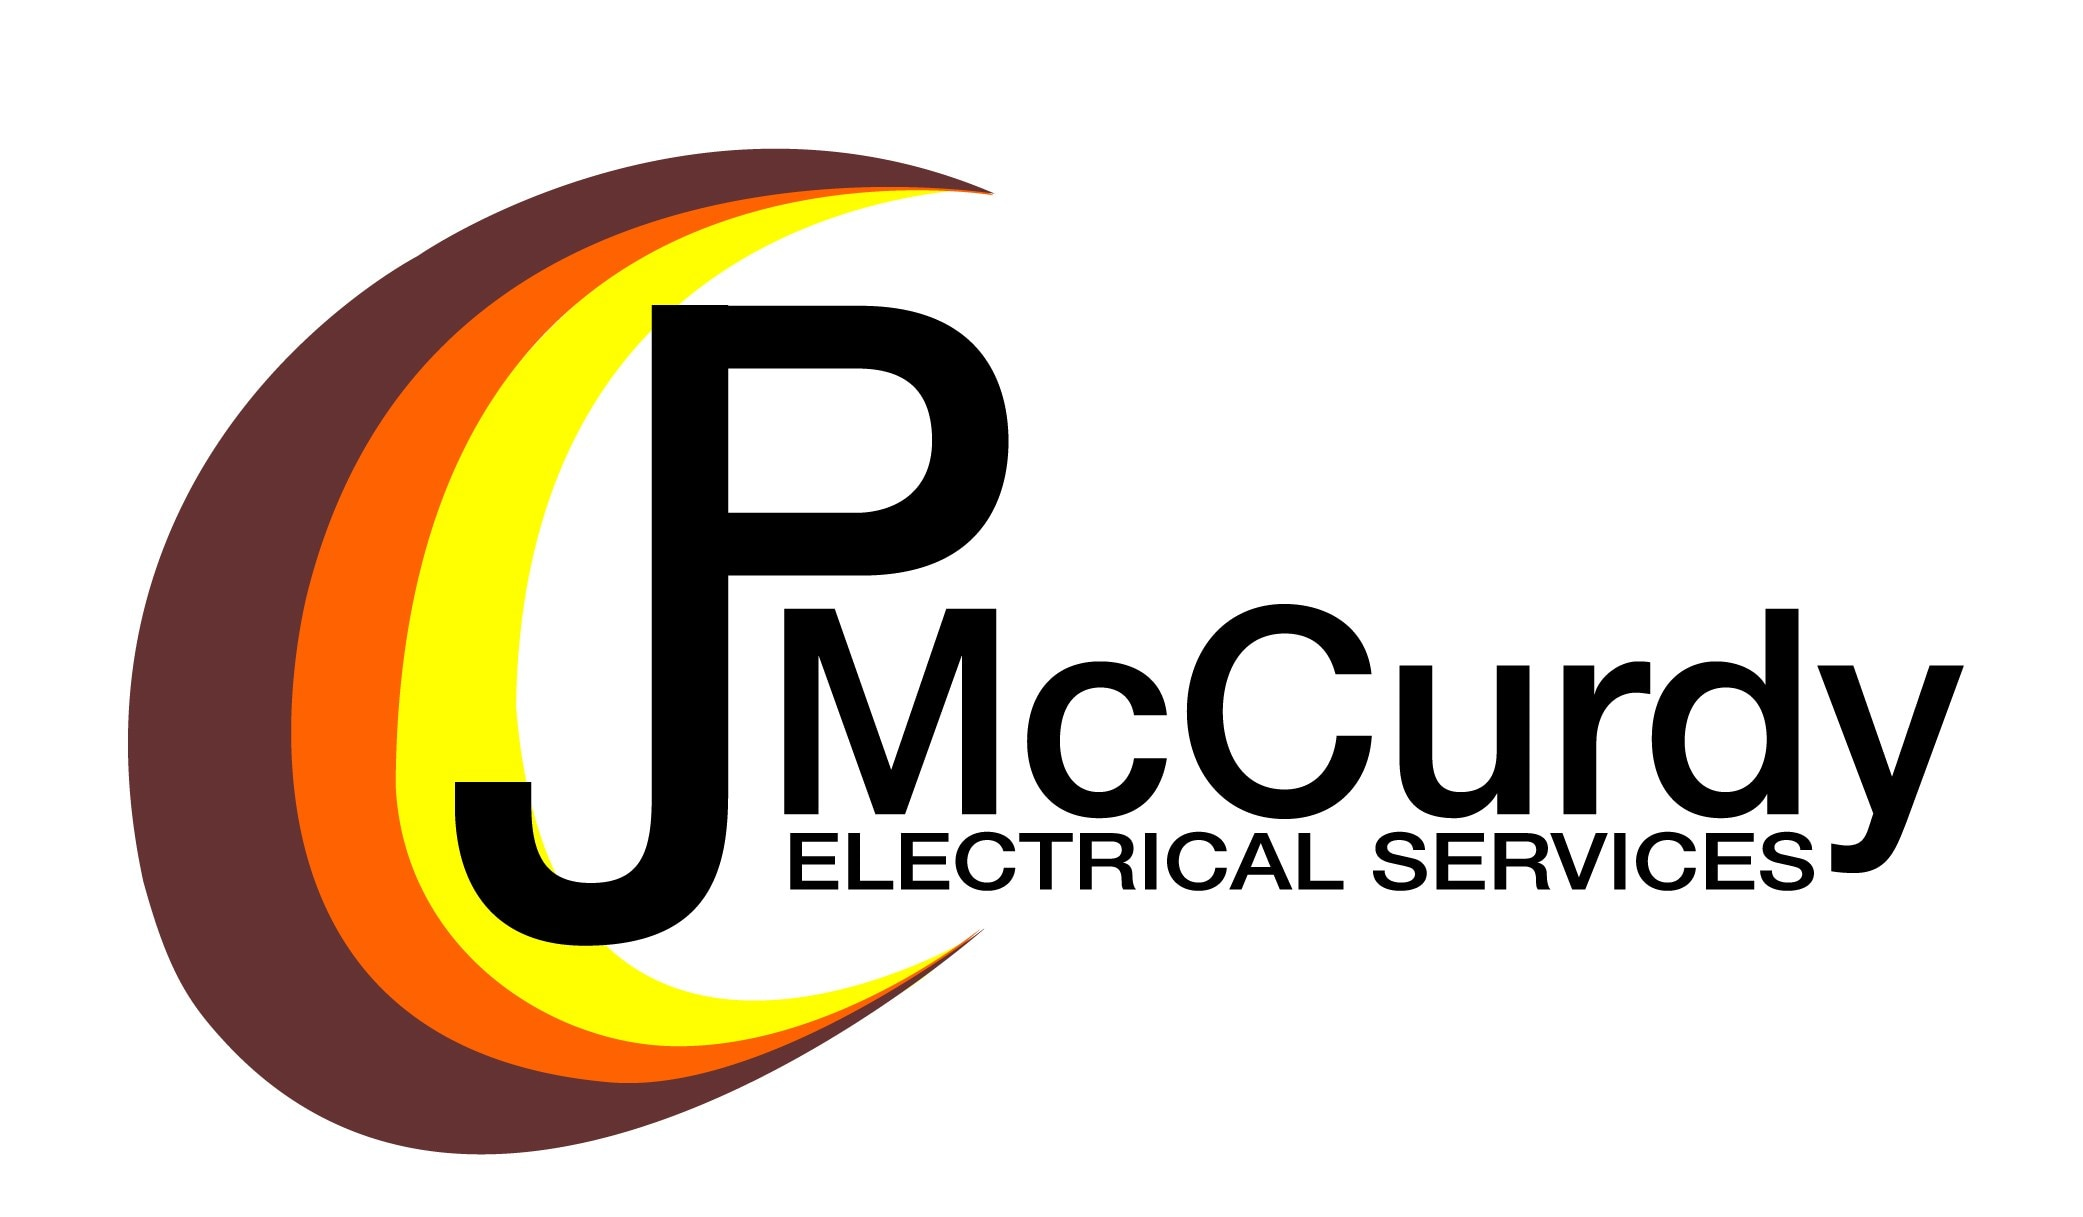 JP McCurdy Electrical Services Inc logo